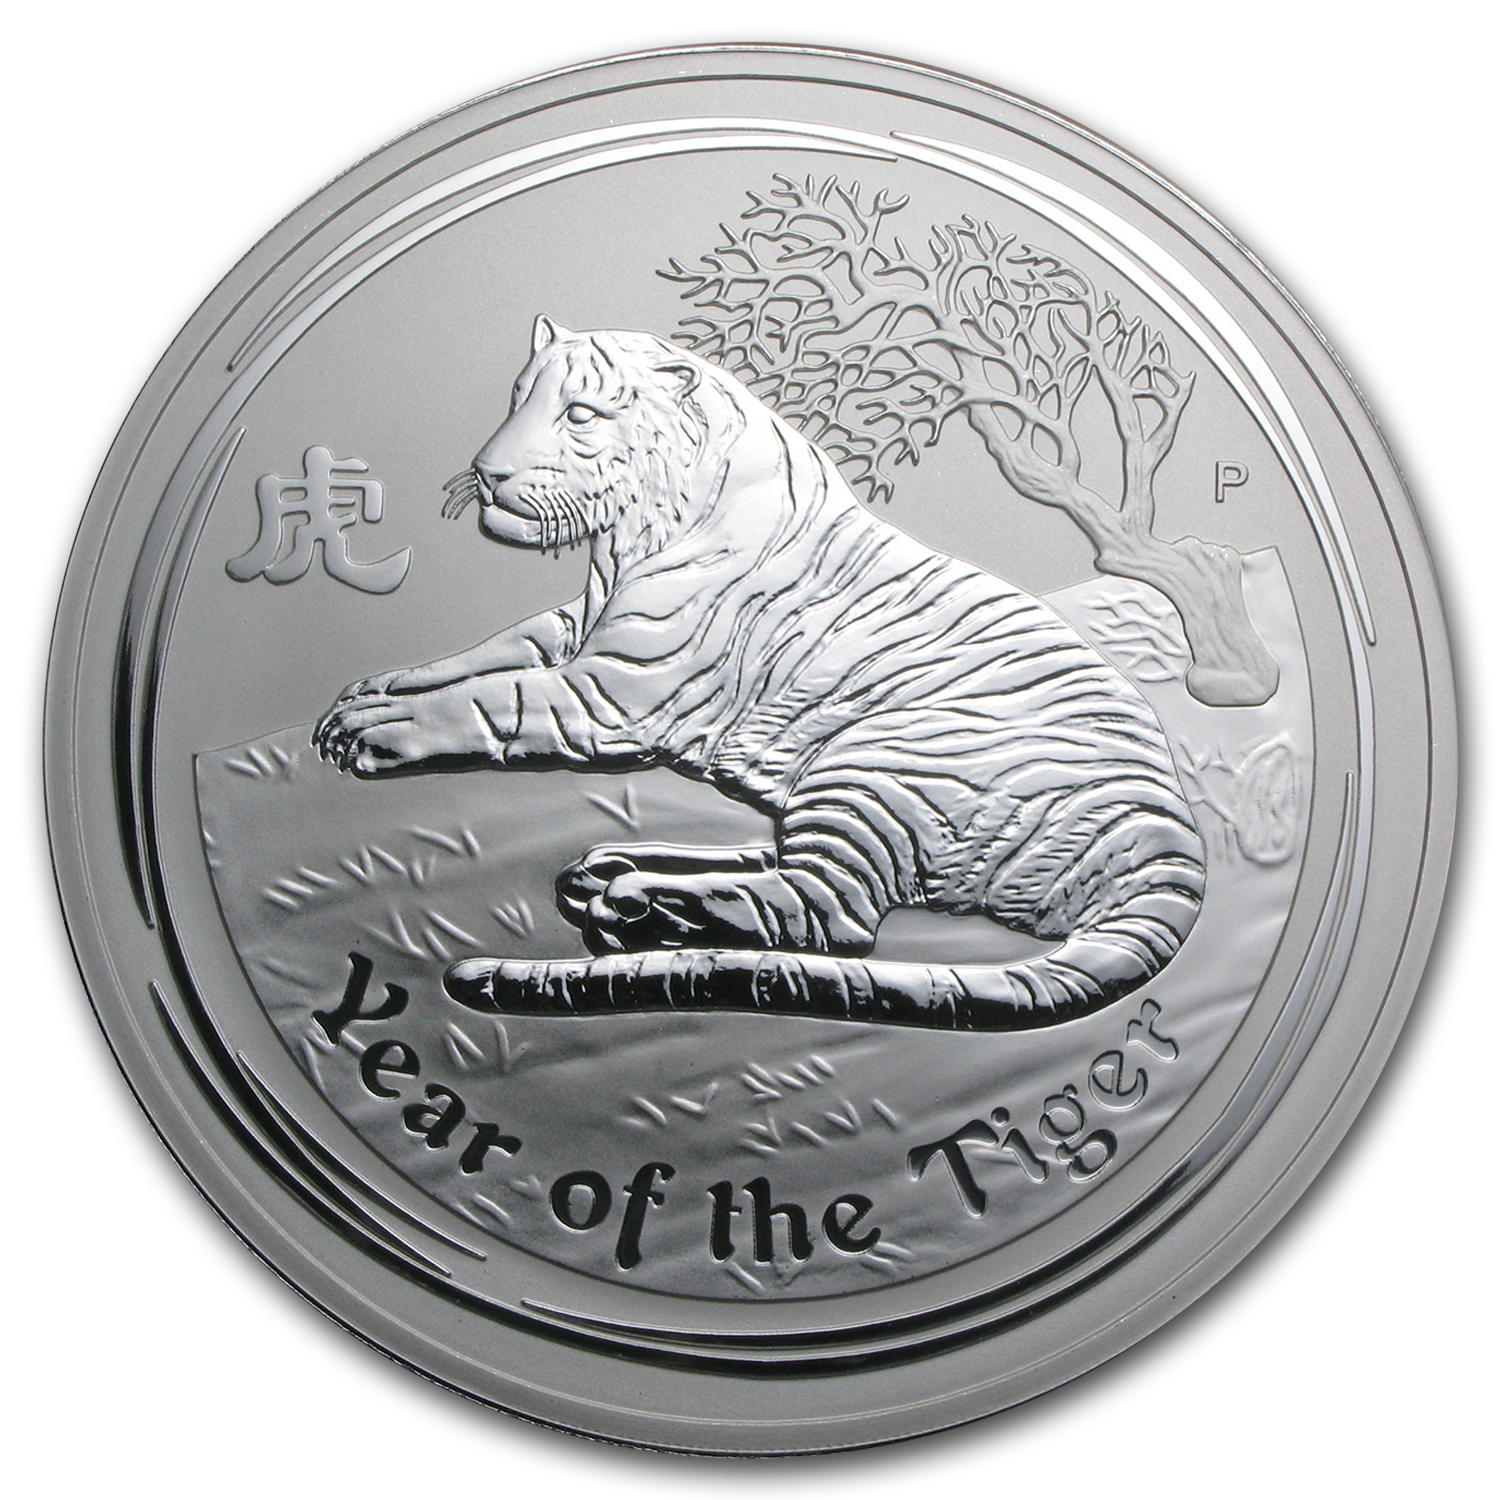 2010 Australia 1 Kilo Silver Year Of The Tiger Bu Series